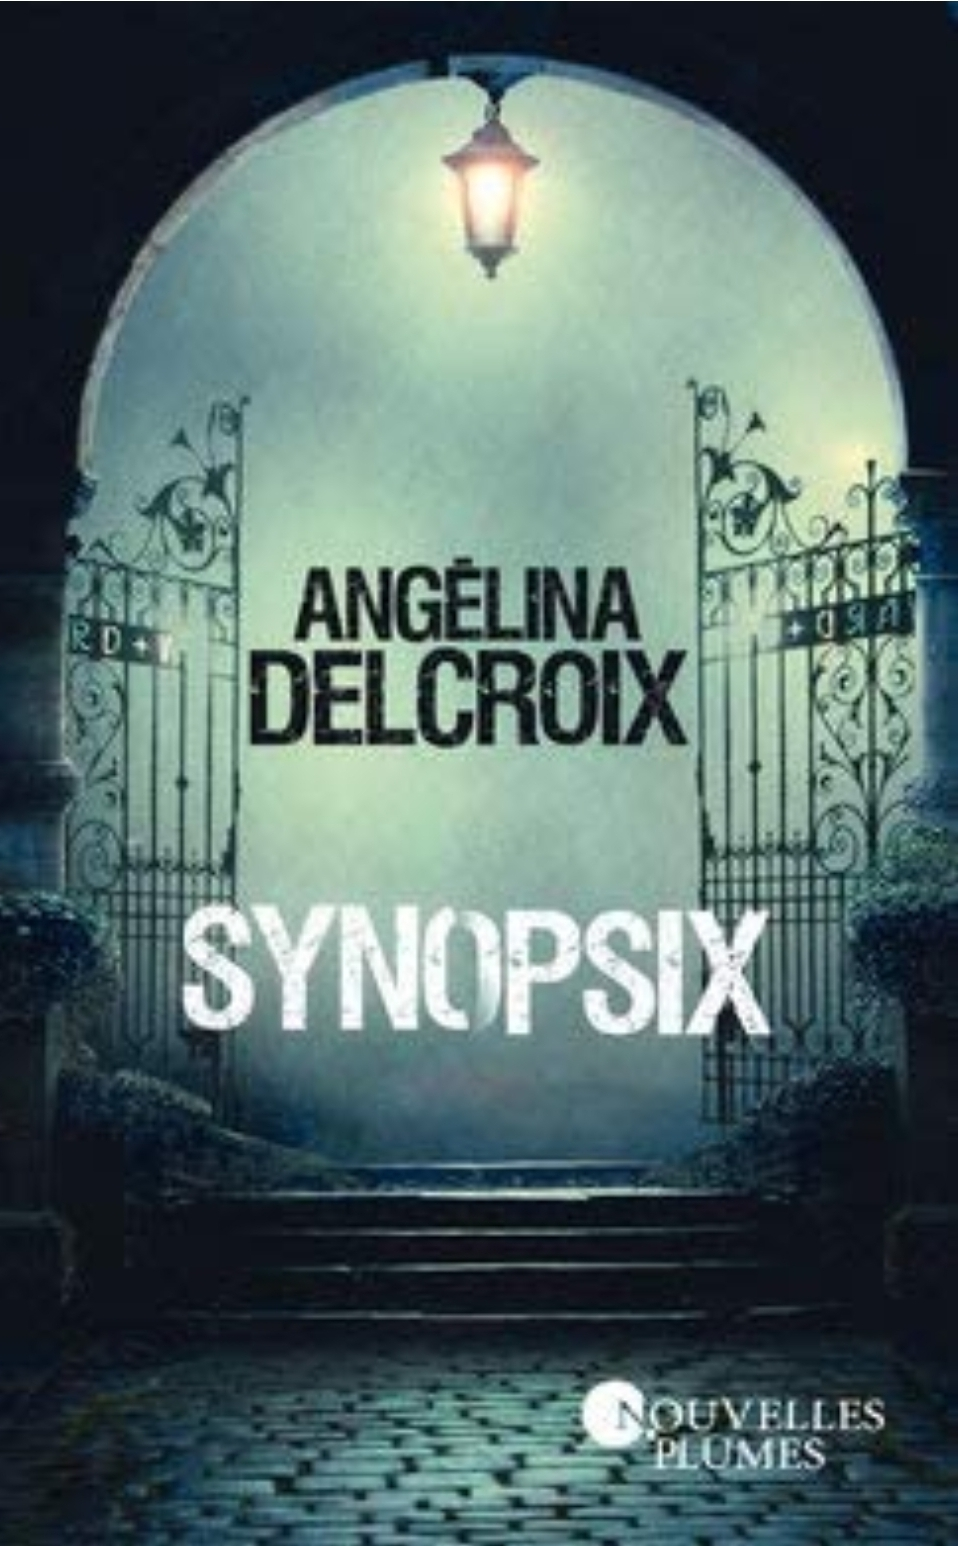 Chroniques 2020  Synopsix d'Angelina Delcroix